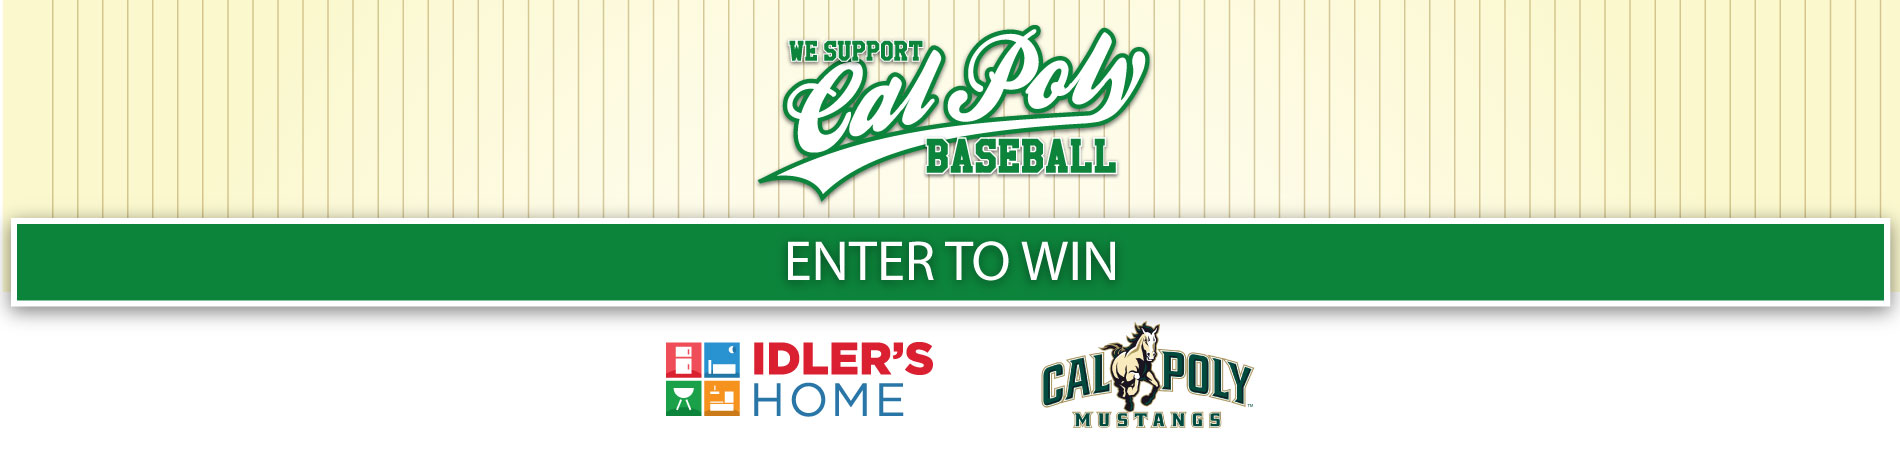 We Support Cal Poly Baseball